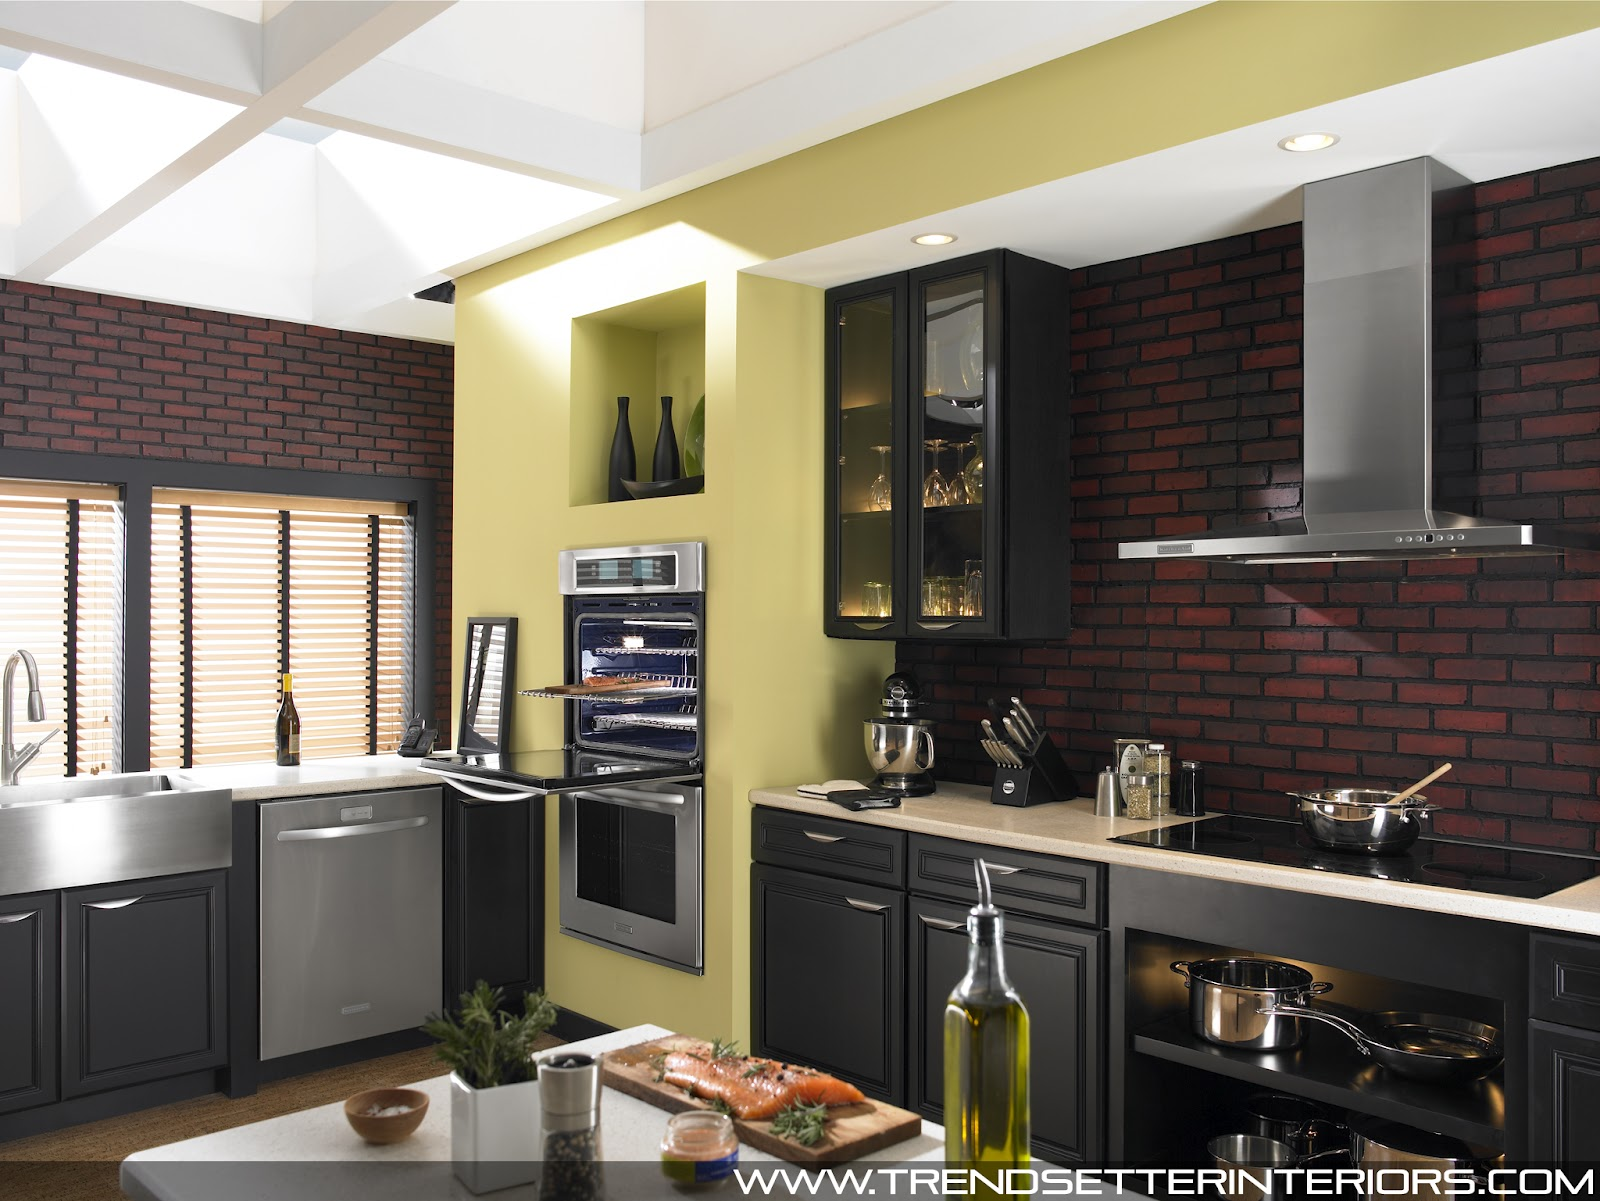 Trendsetter Interiors Kitchen Designs By Kitchenaid Architect Series